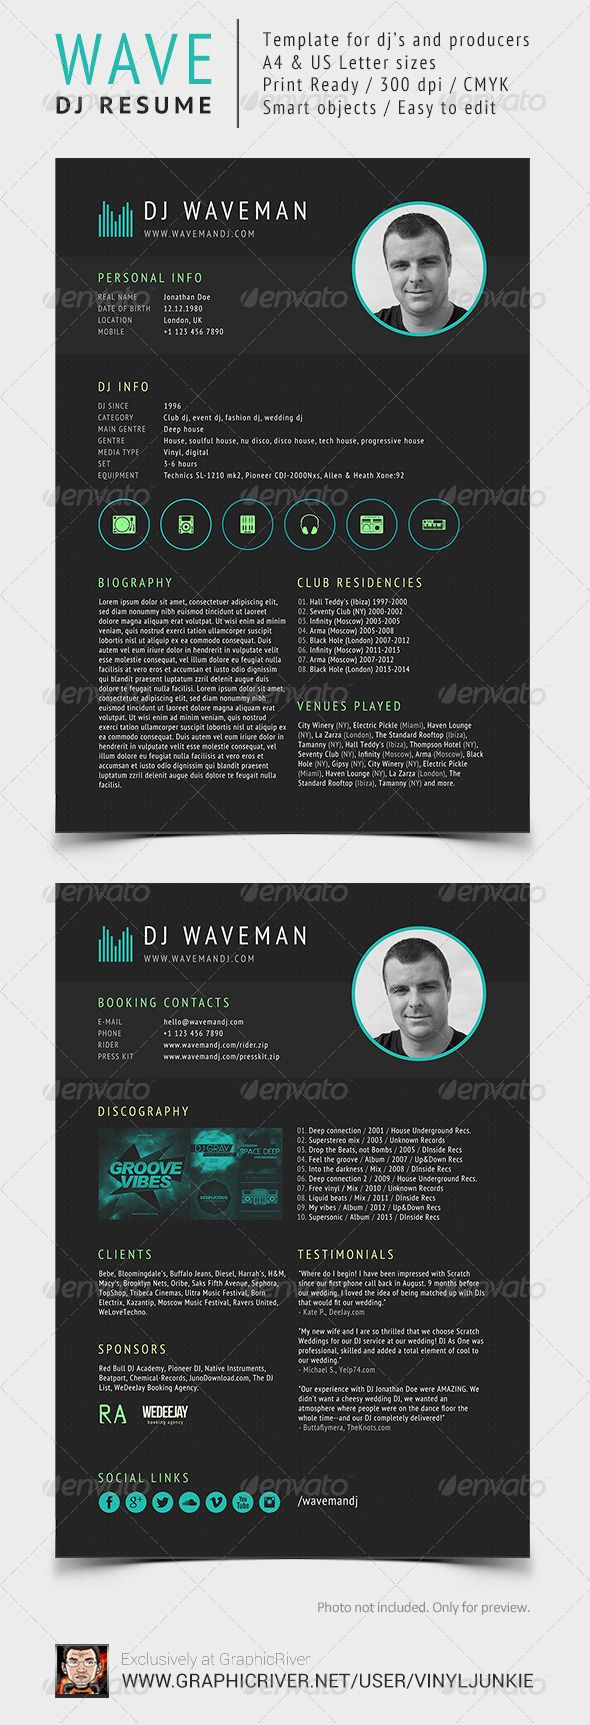 15 best images about dj press kit and dj resume templates for Dj press kit template free